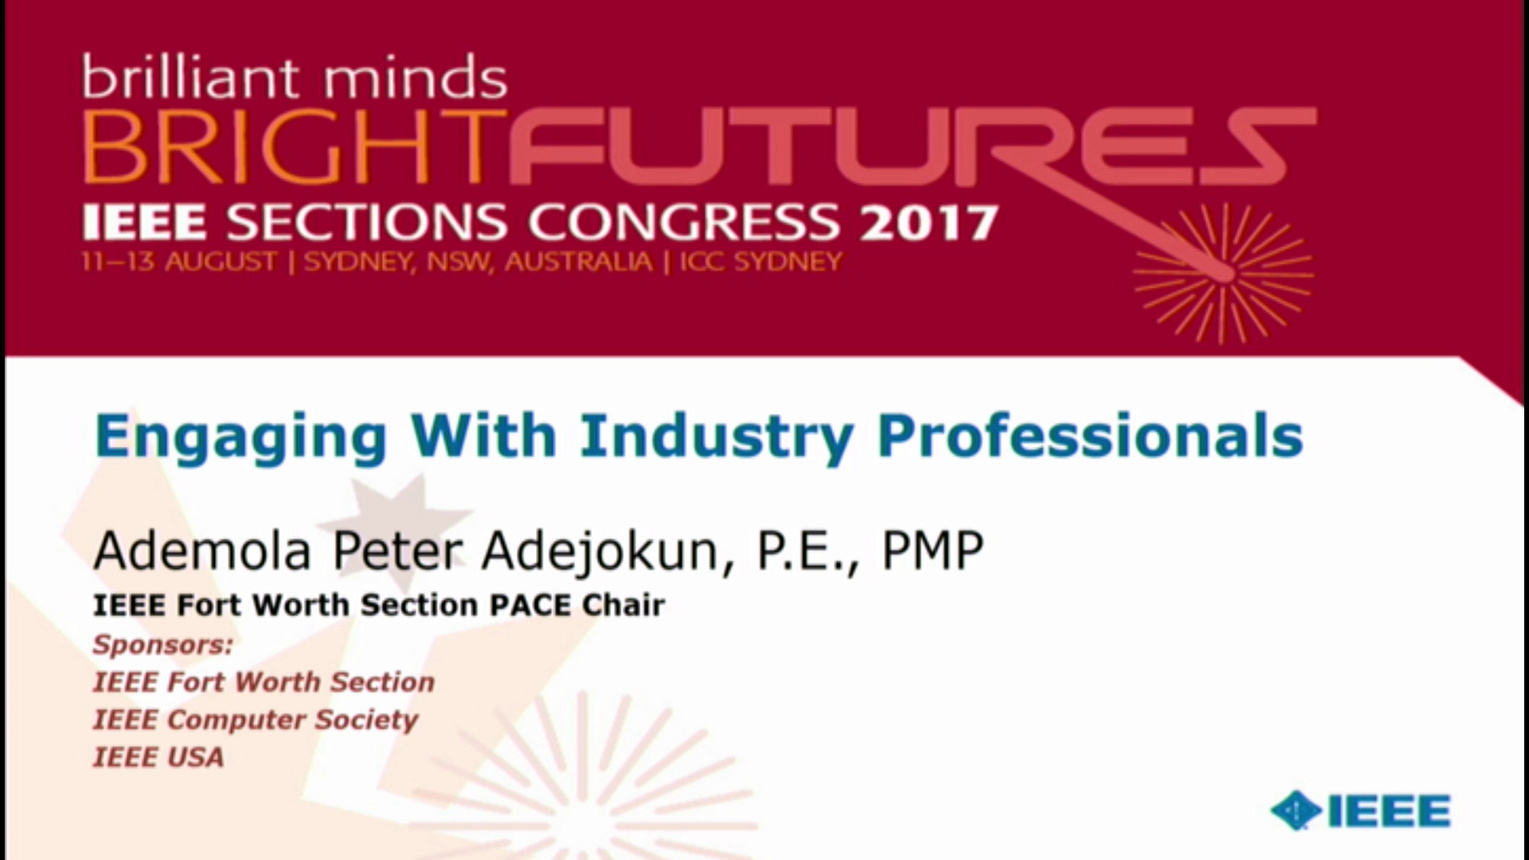 Engaging with Industry Professionals - Ademola Adejokun - Brief Sessions: Sections Congress 2017